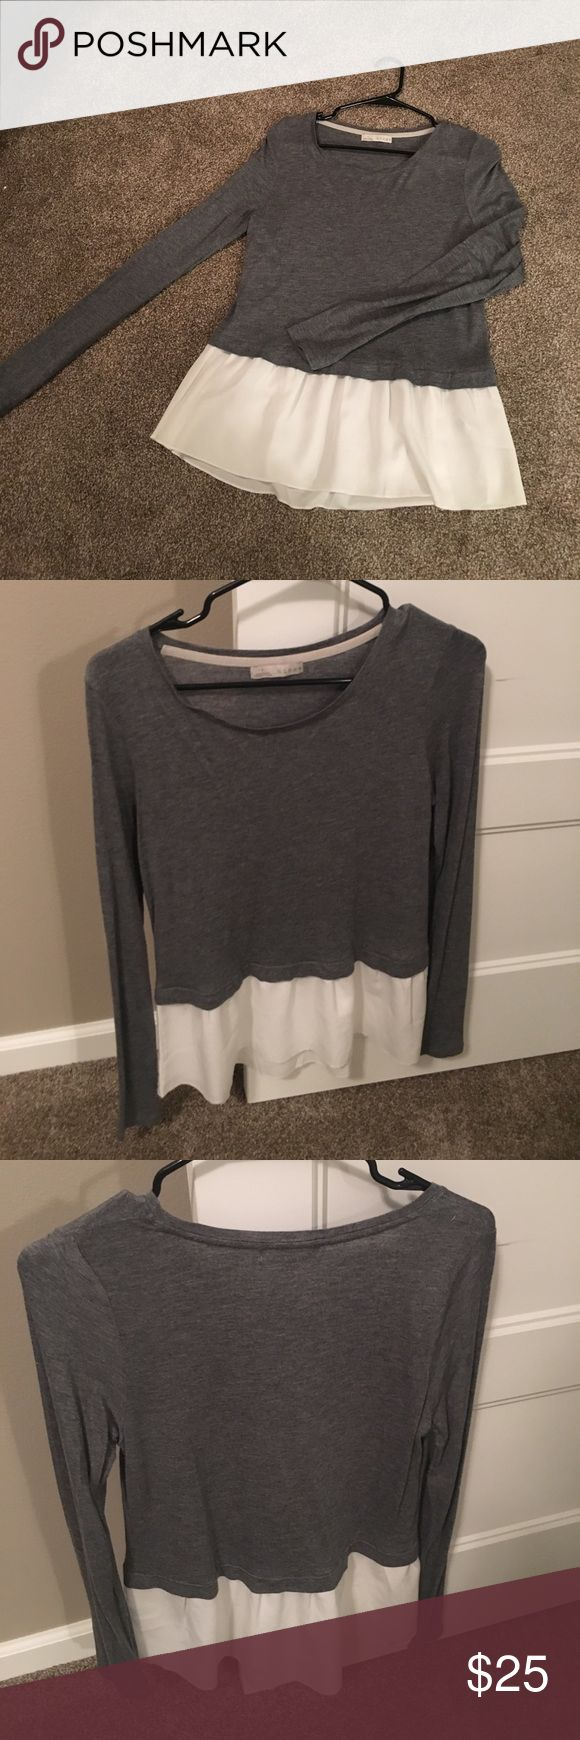 Hinge Grey & White Layered look top Hinge Grey &a White layered look long sleeve. Body is 100% viscose and super soft. Woven is 100% polyester   Worn twice. Comfortable and casual, yet can wear to work   Small hinge Tops Tees - Long Sleeve